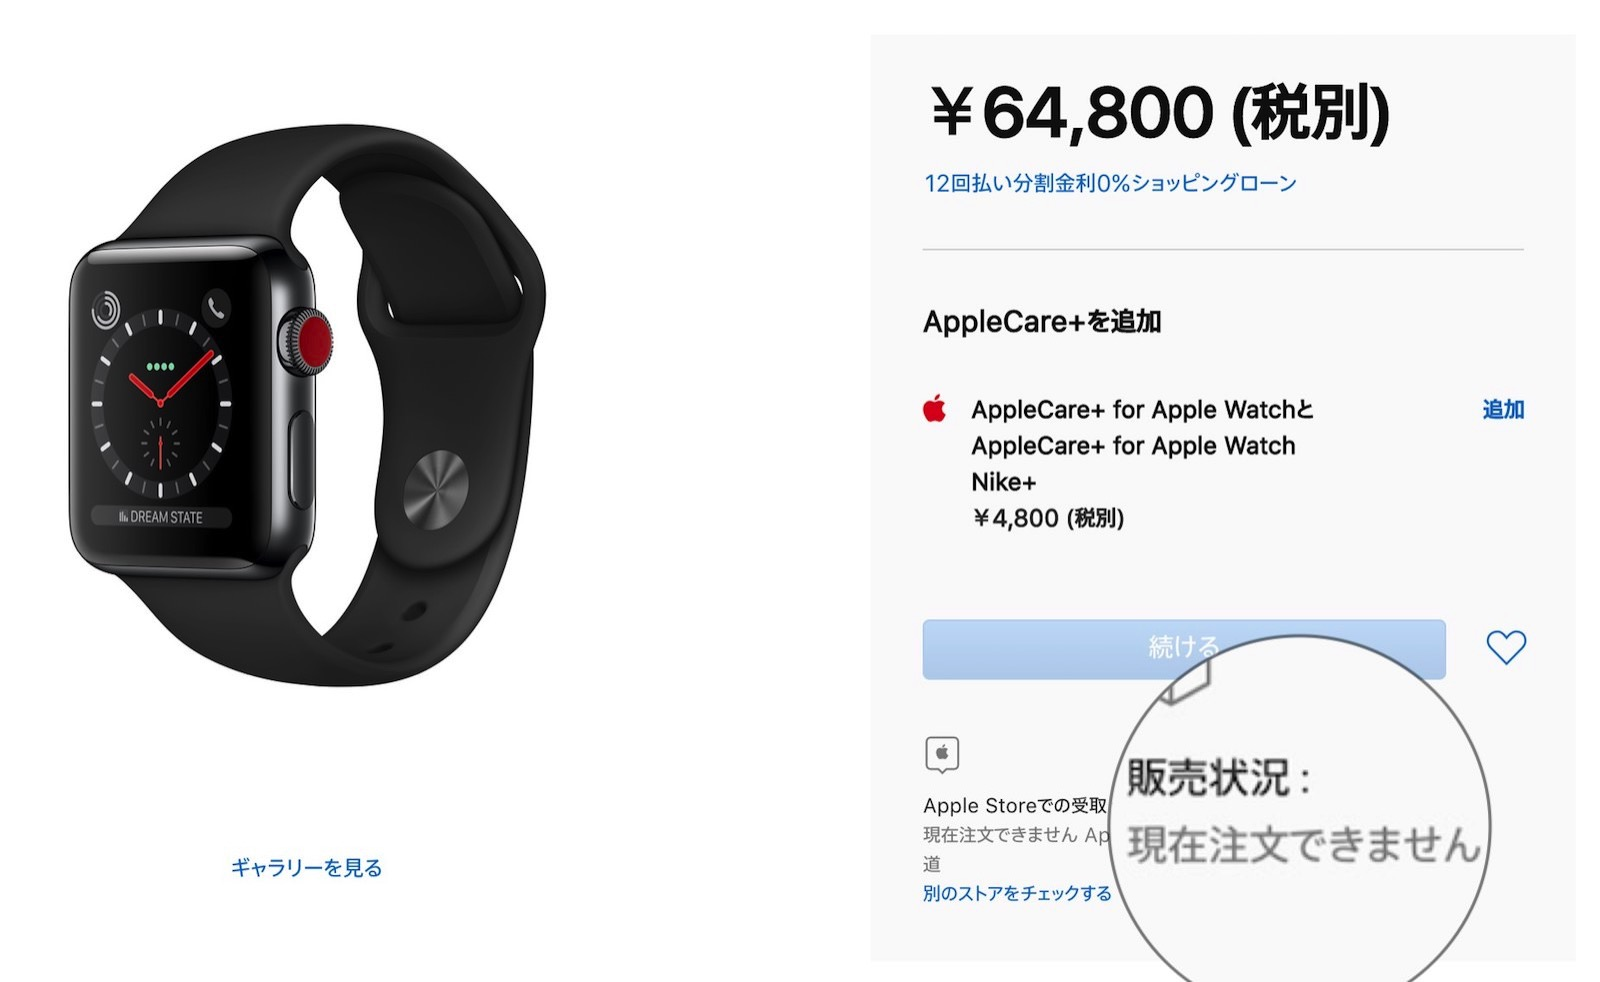 Apple Series 3 sold out